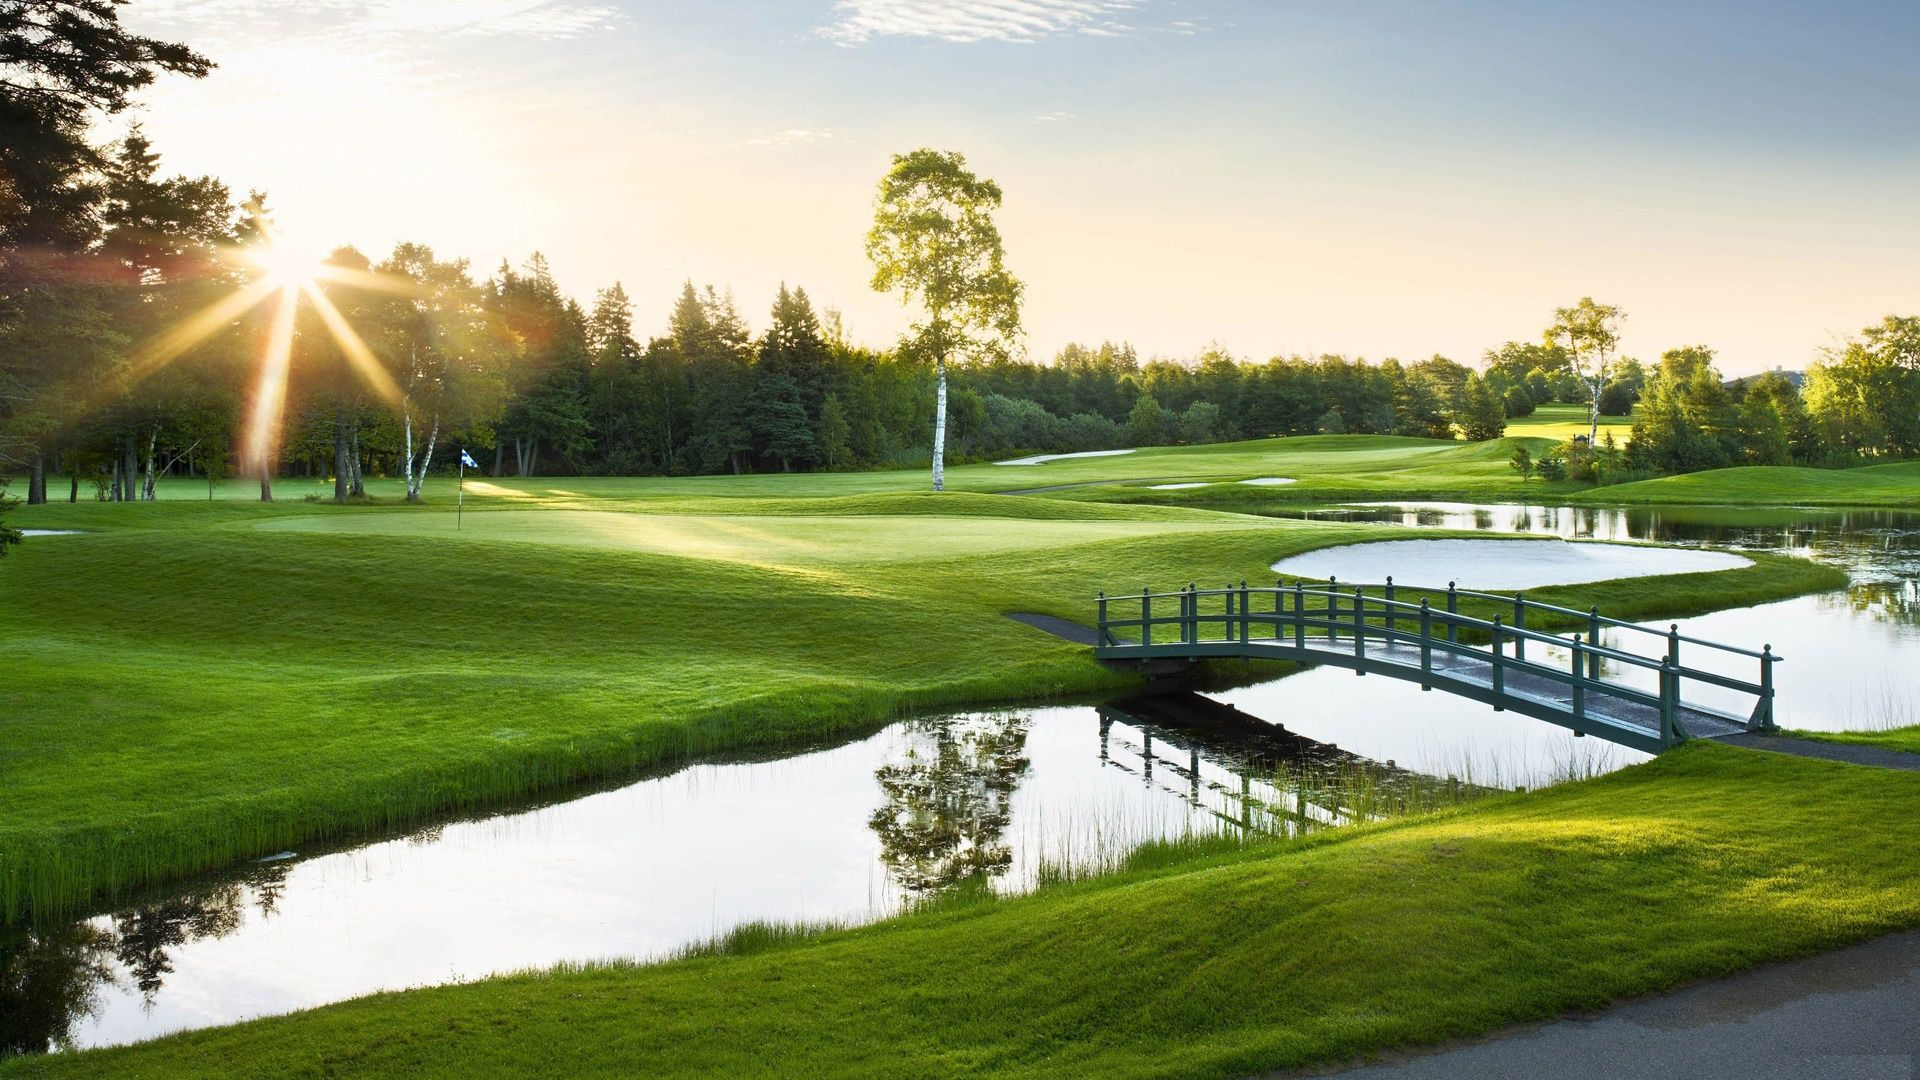 Golf Course Wallpaper Backgrounds Wallpaperpulse Golf Courses Golf Pictures Prince Edward Island